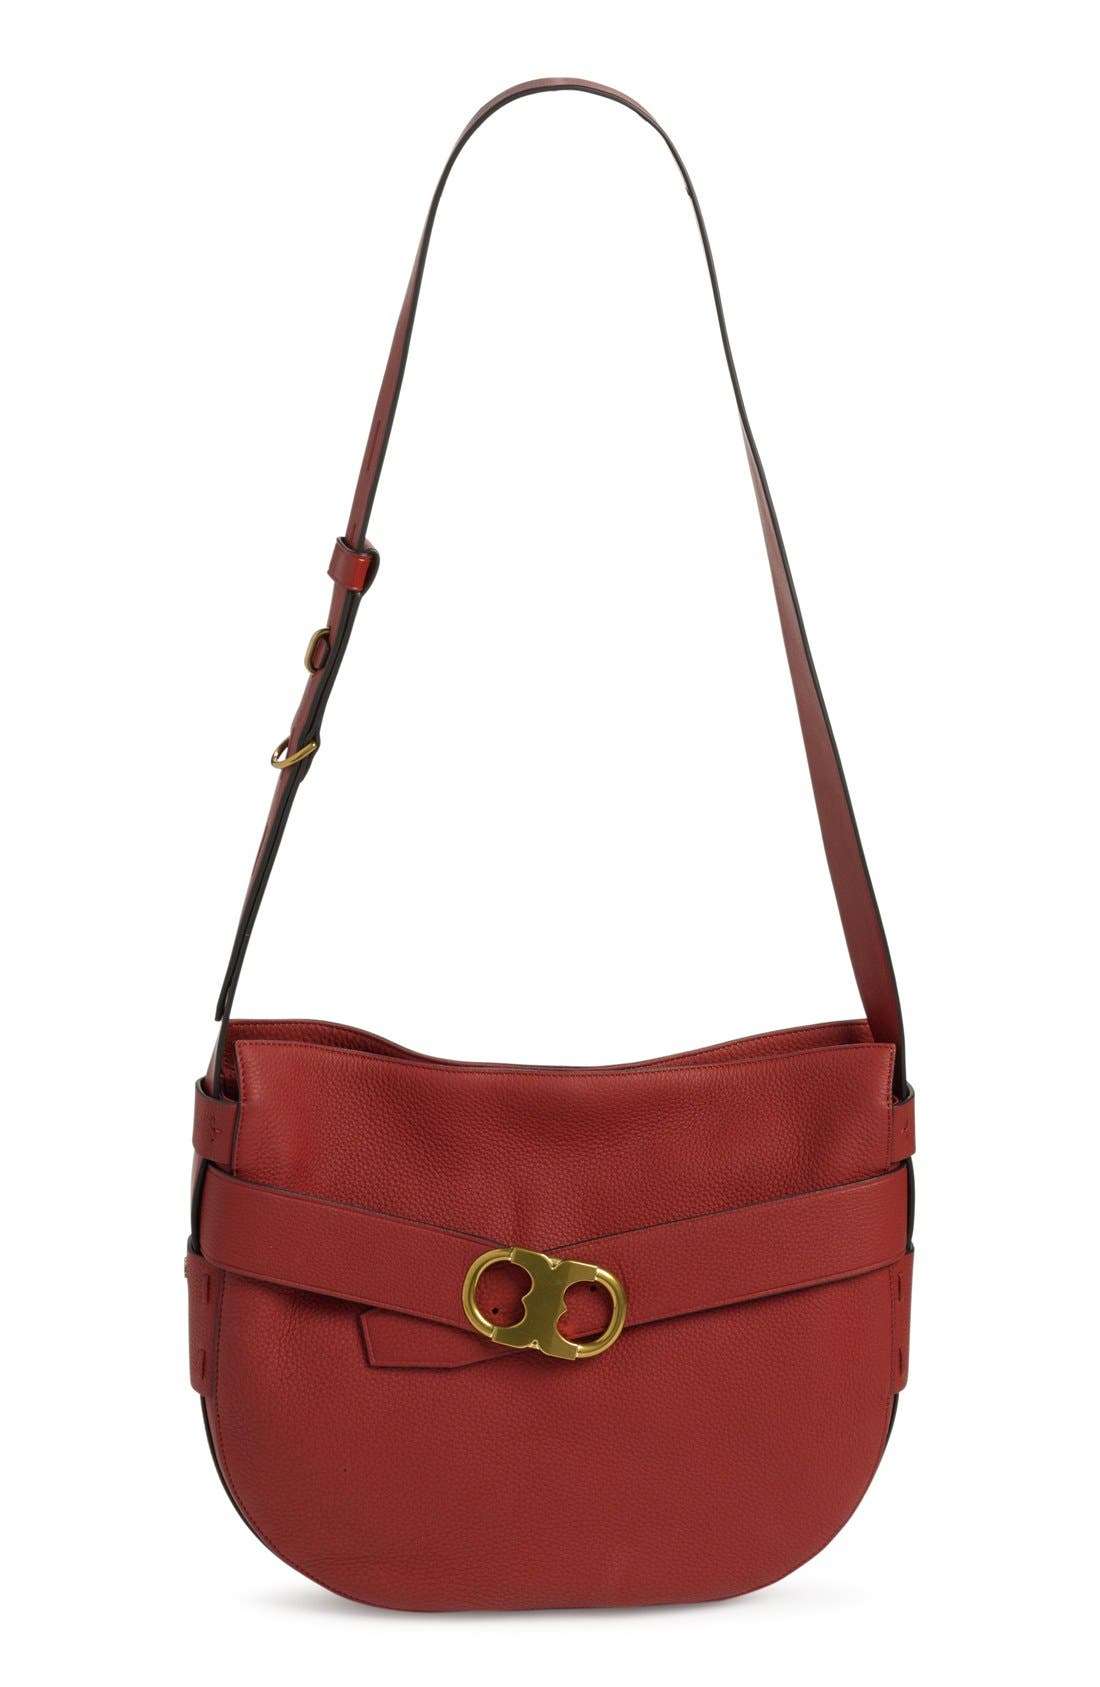 TORY BURCH 'Gemini' Belted Leather Hobo